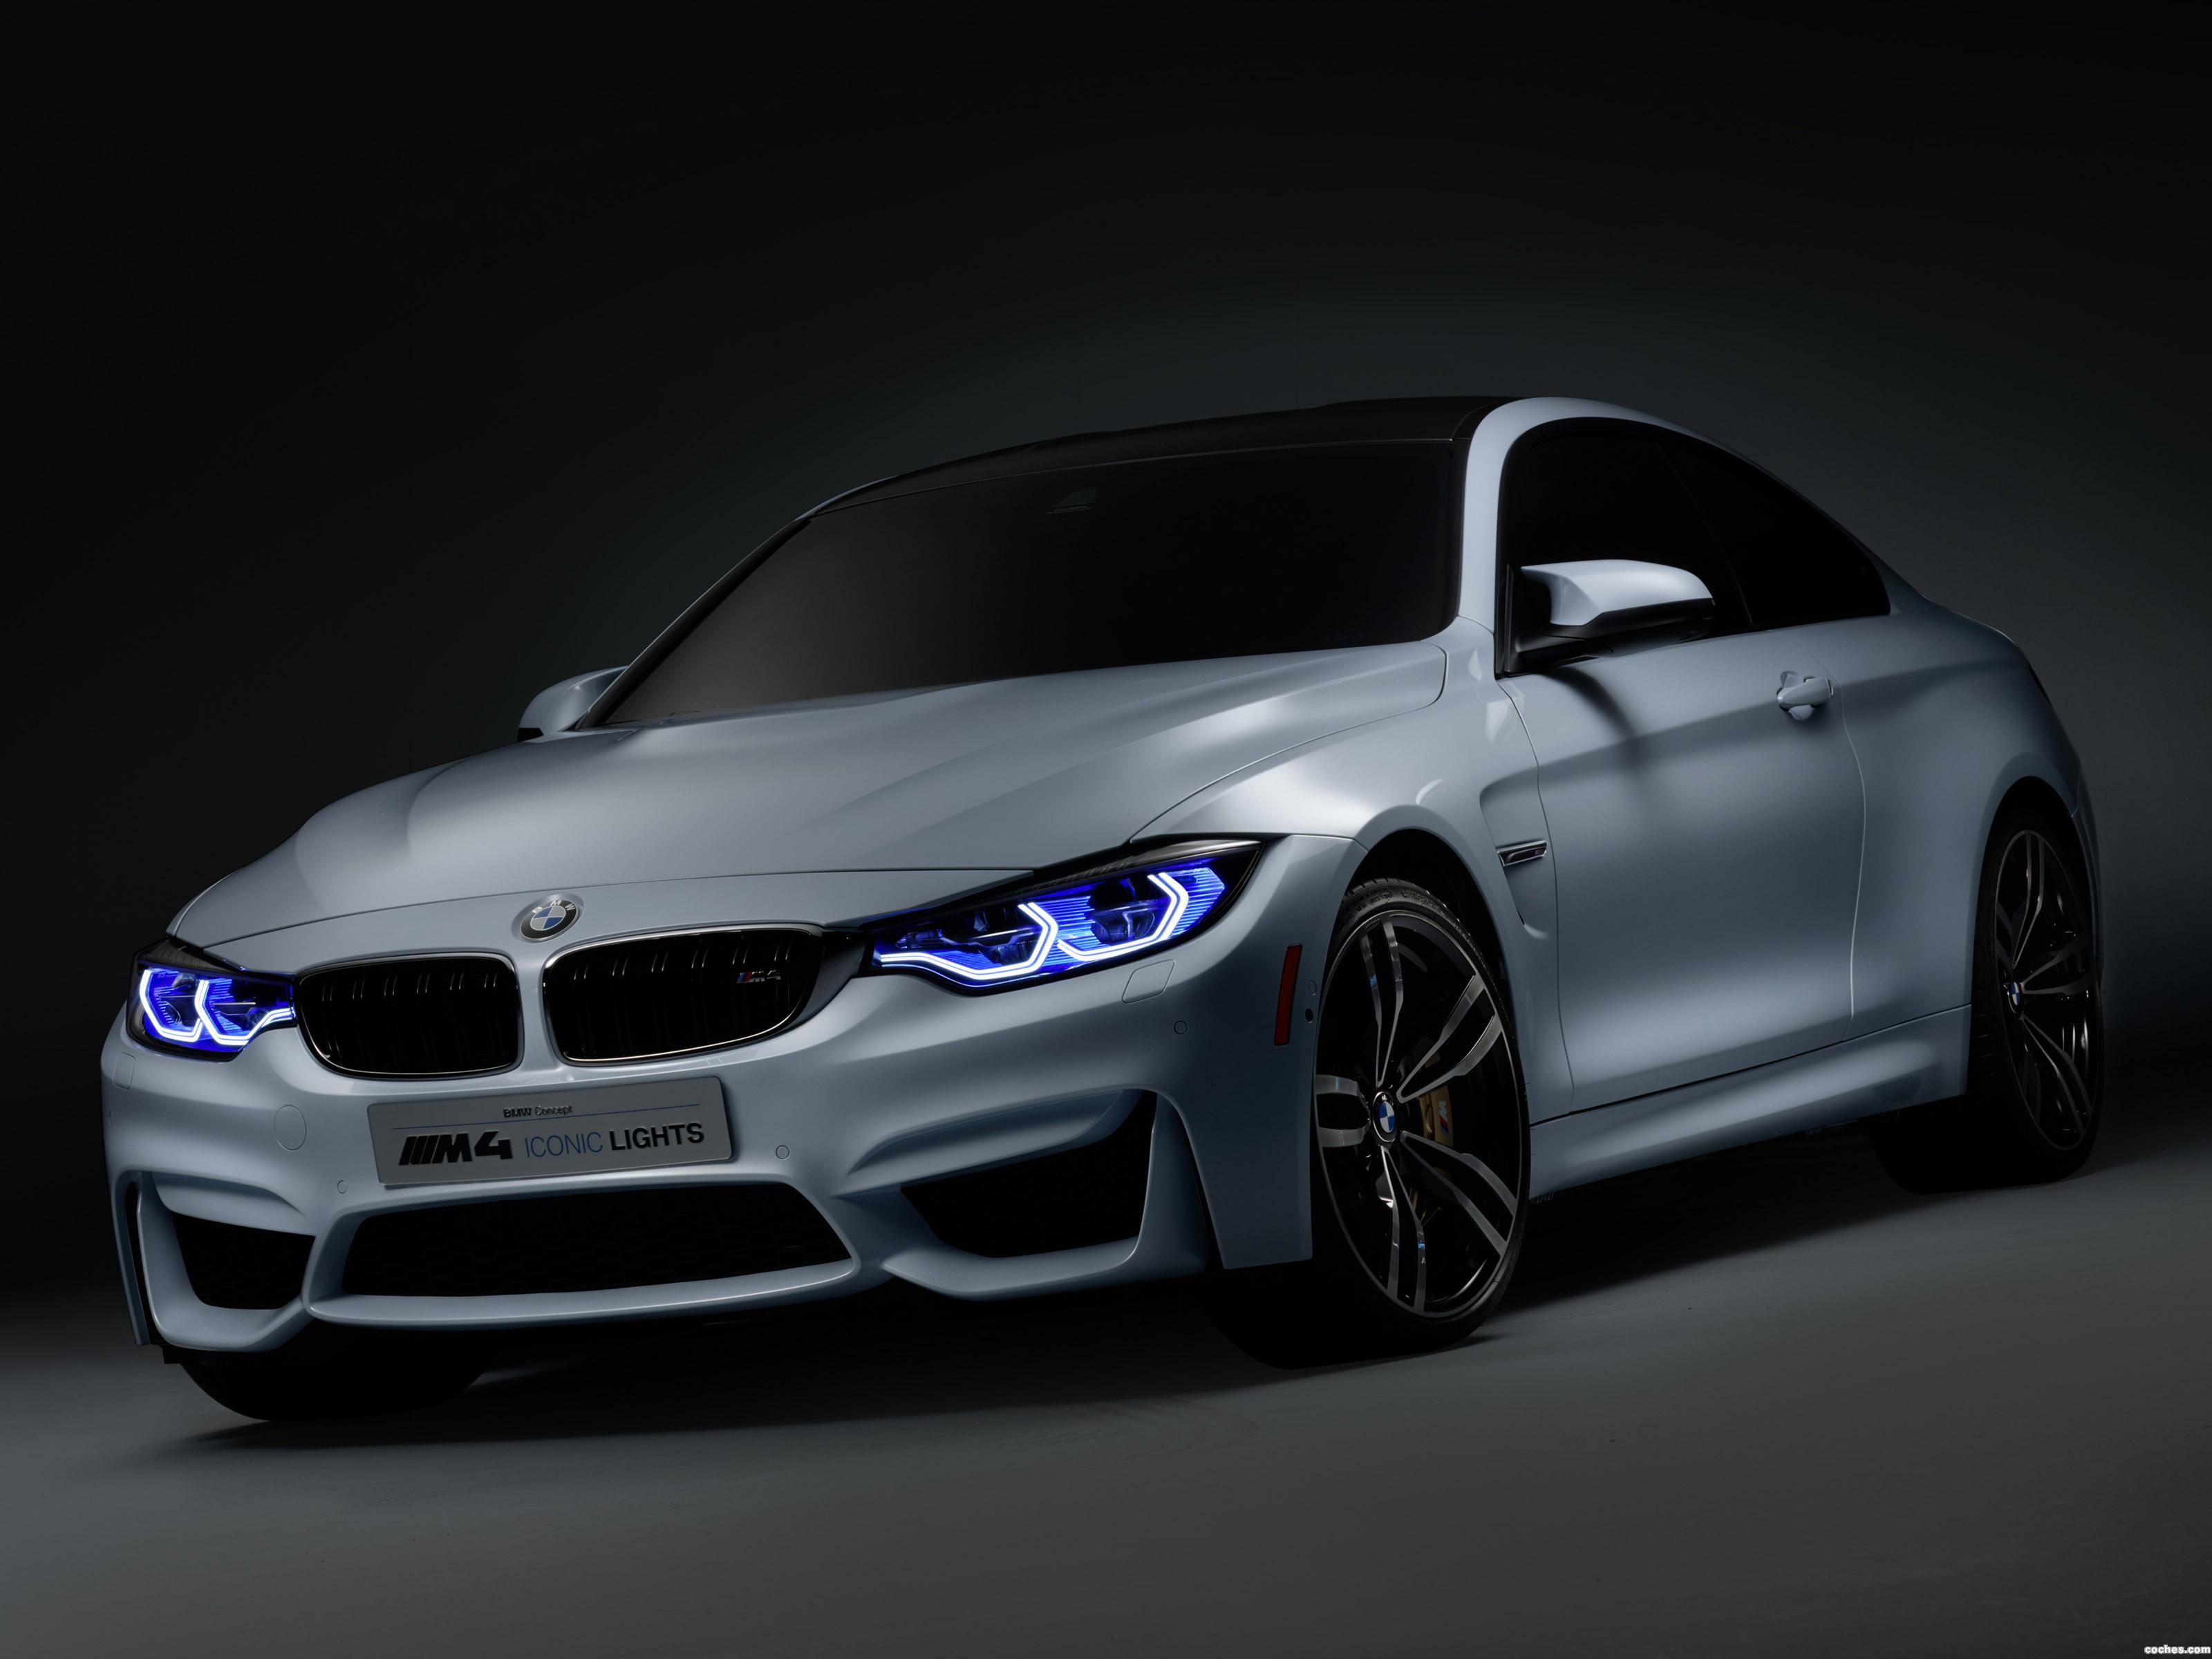 Fotos De BMW Serie 4 Concept M4 Iconic Lights F82 2015